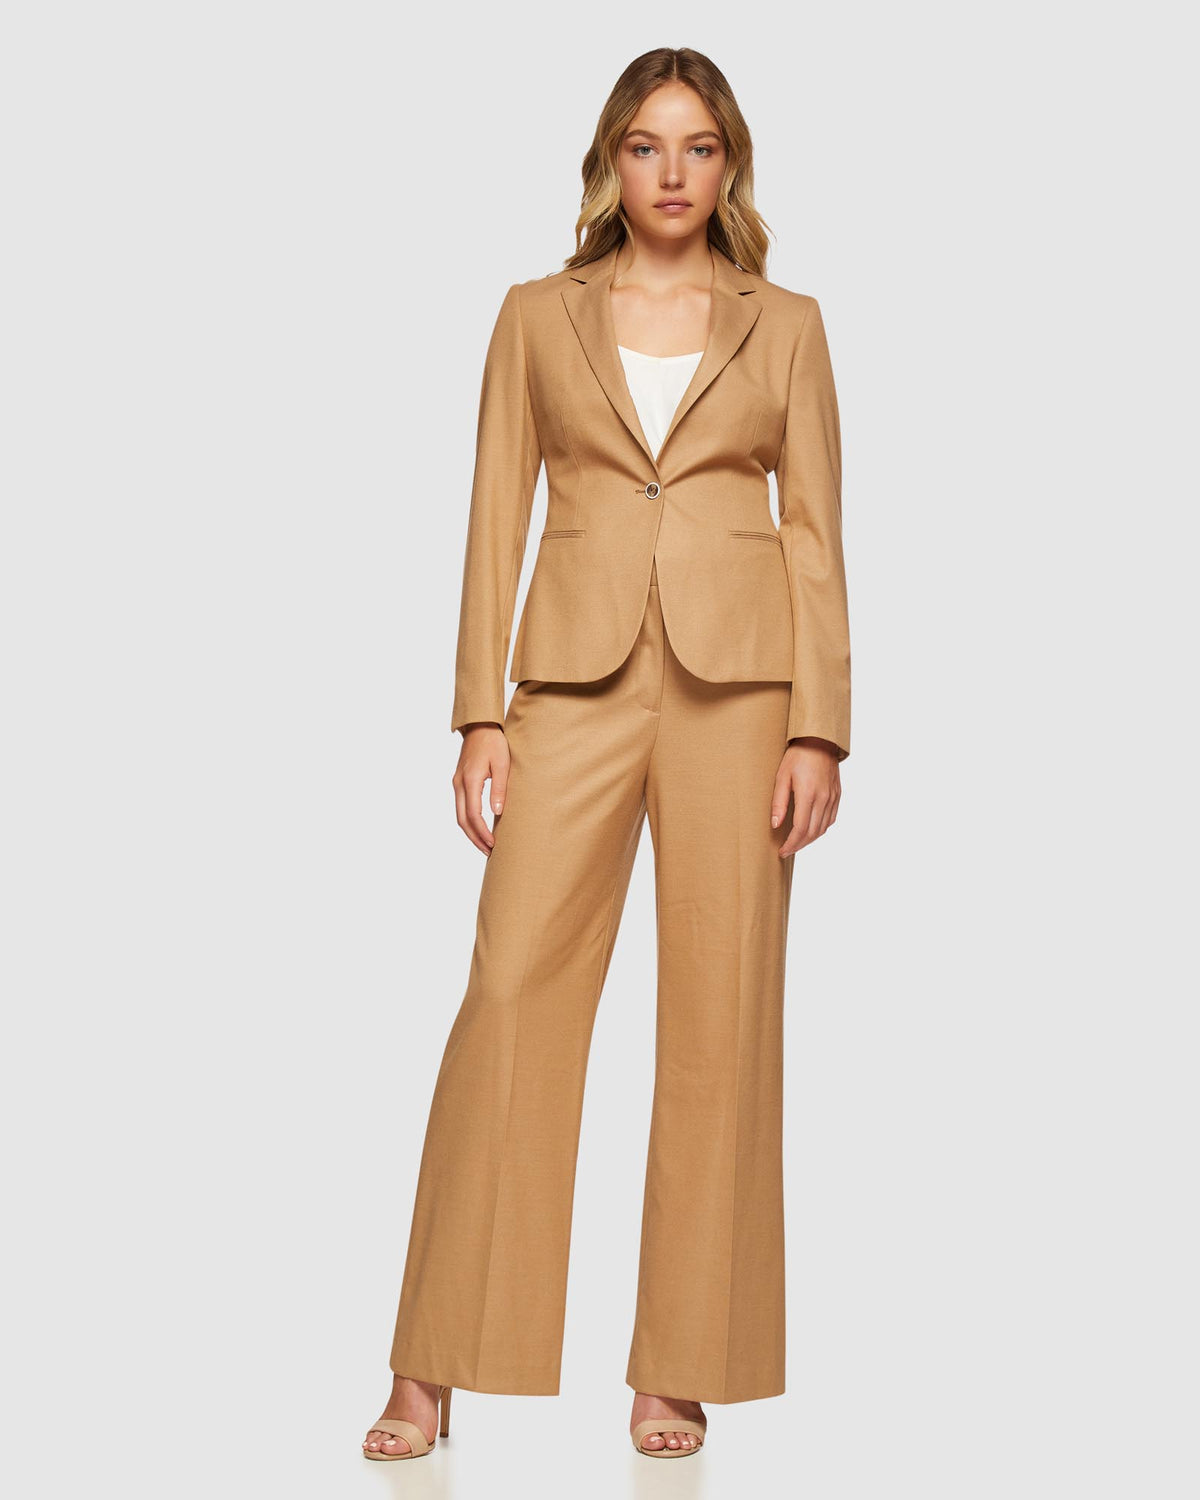 CHICA ECO SUIT JACKET CAMEL